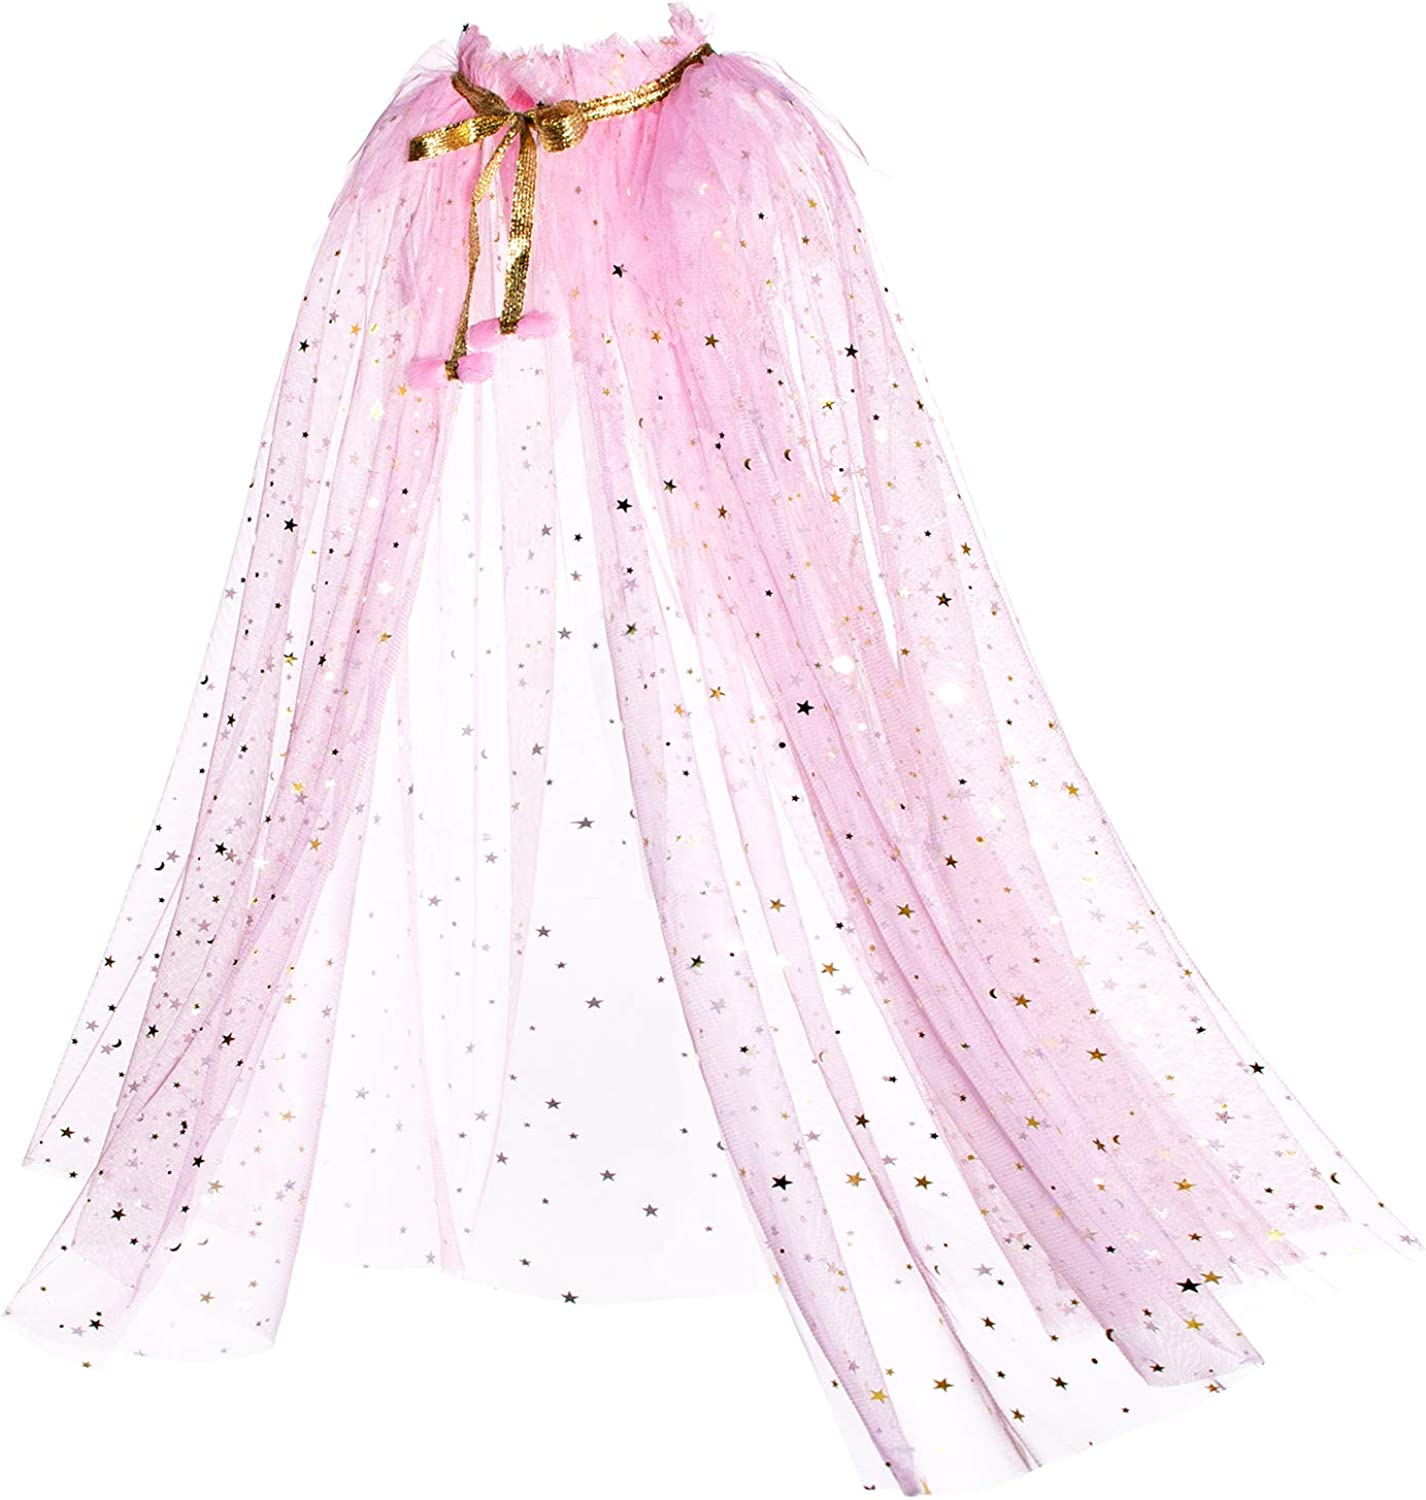 Party Chili Princess Super-cheap Cape Cloaks for Little Up Max 78% OFF Dress Girls